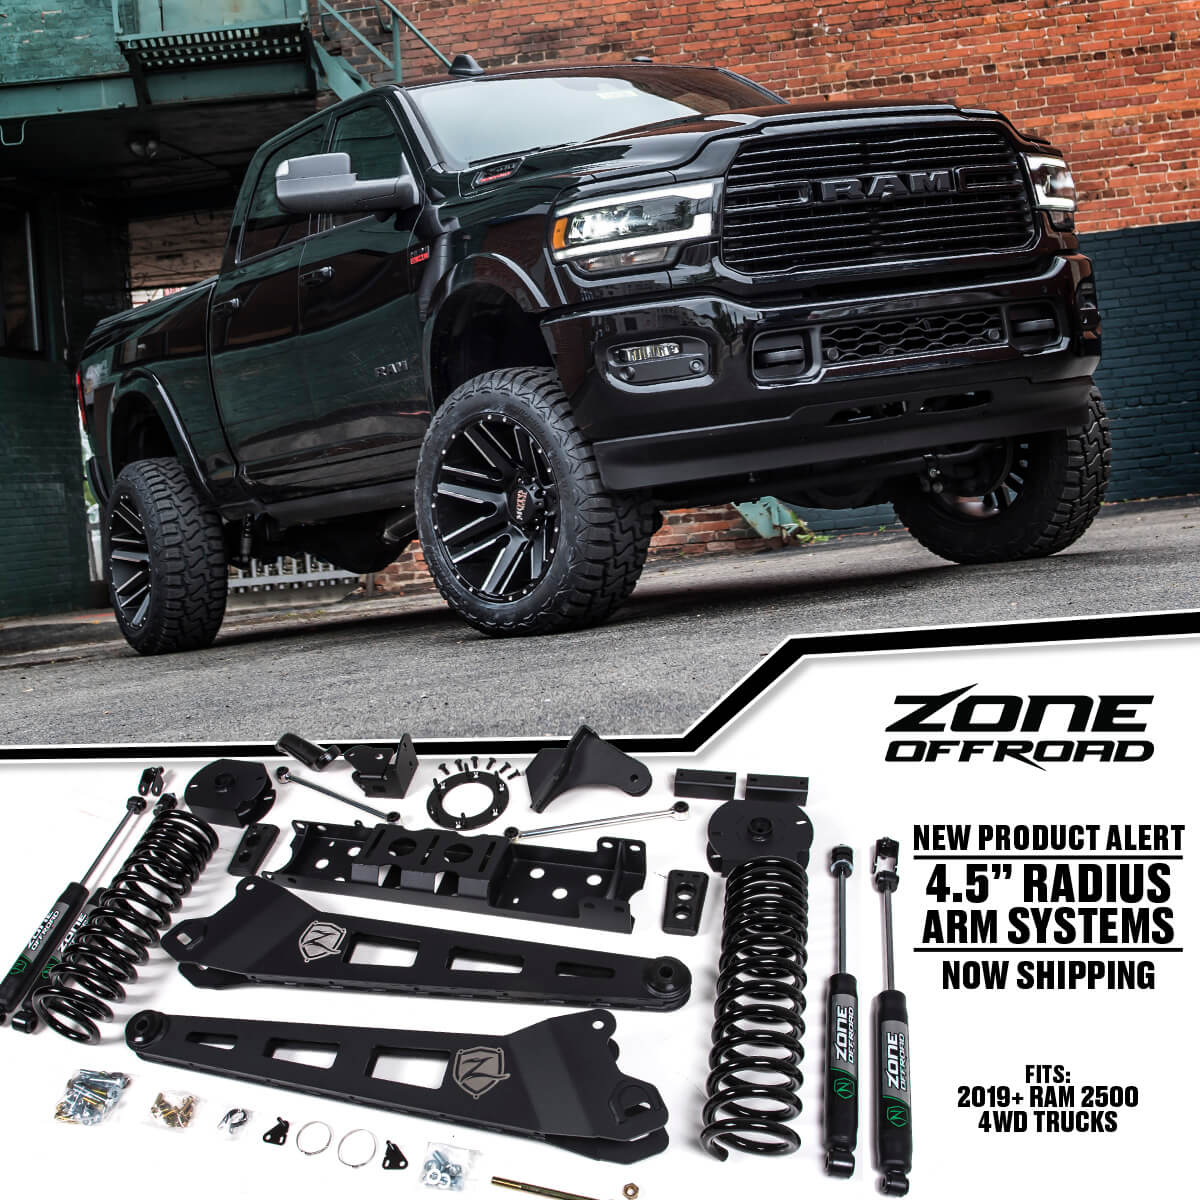 2019 Ram 2500 Lift Kits By Zone Offroad Products